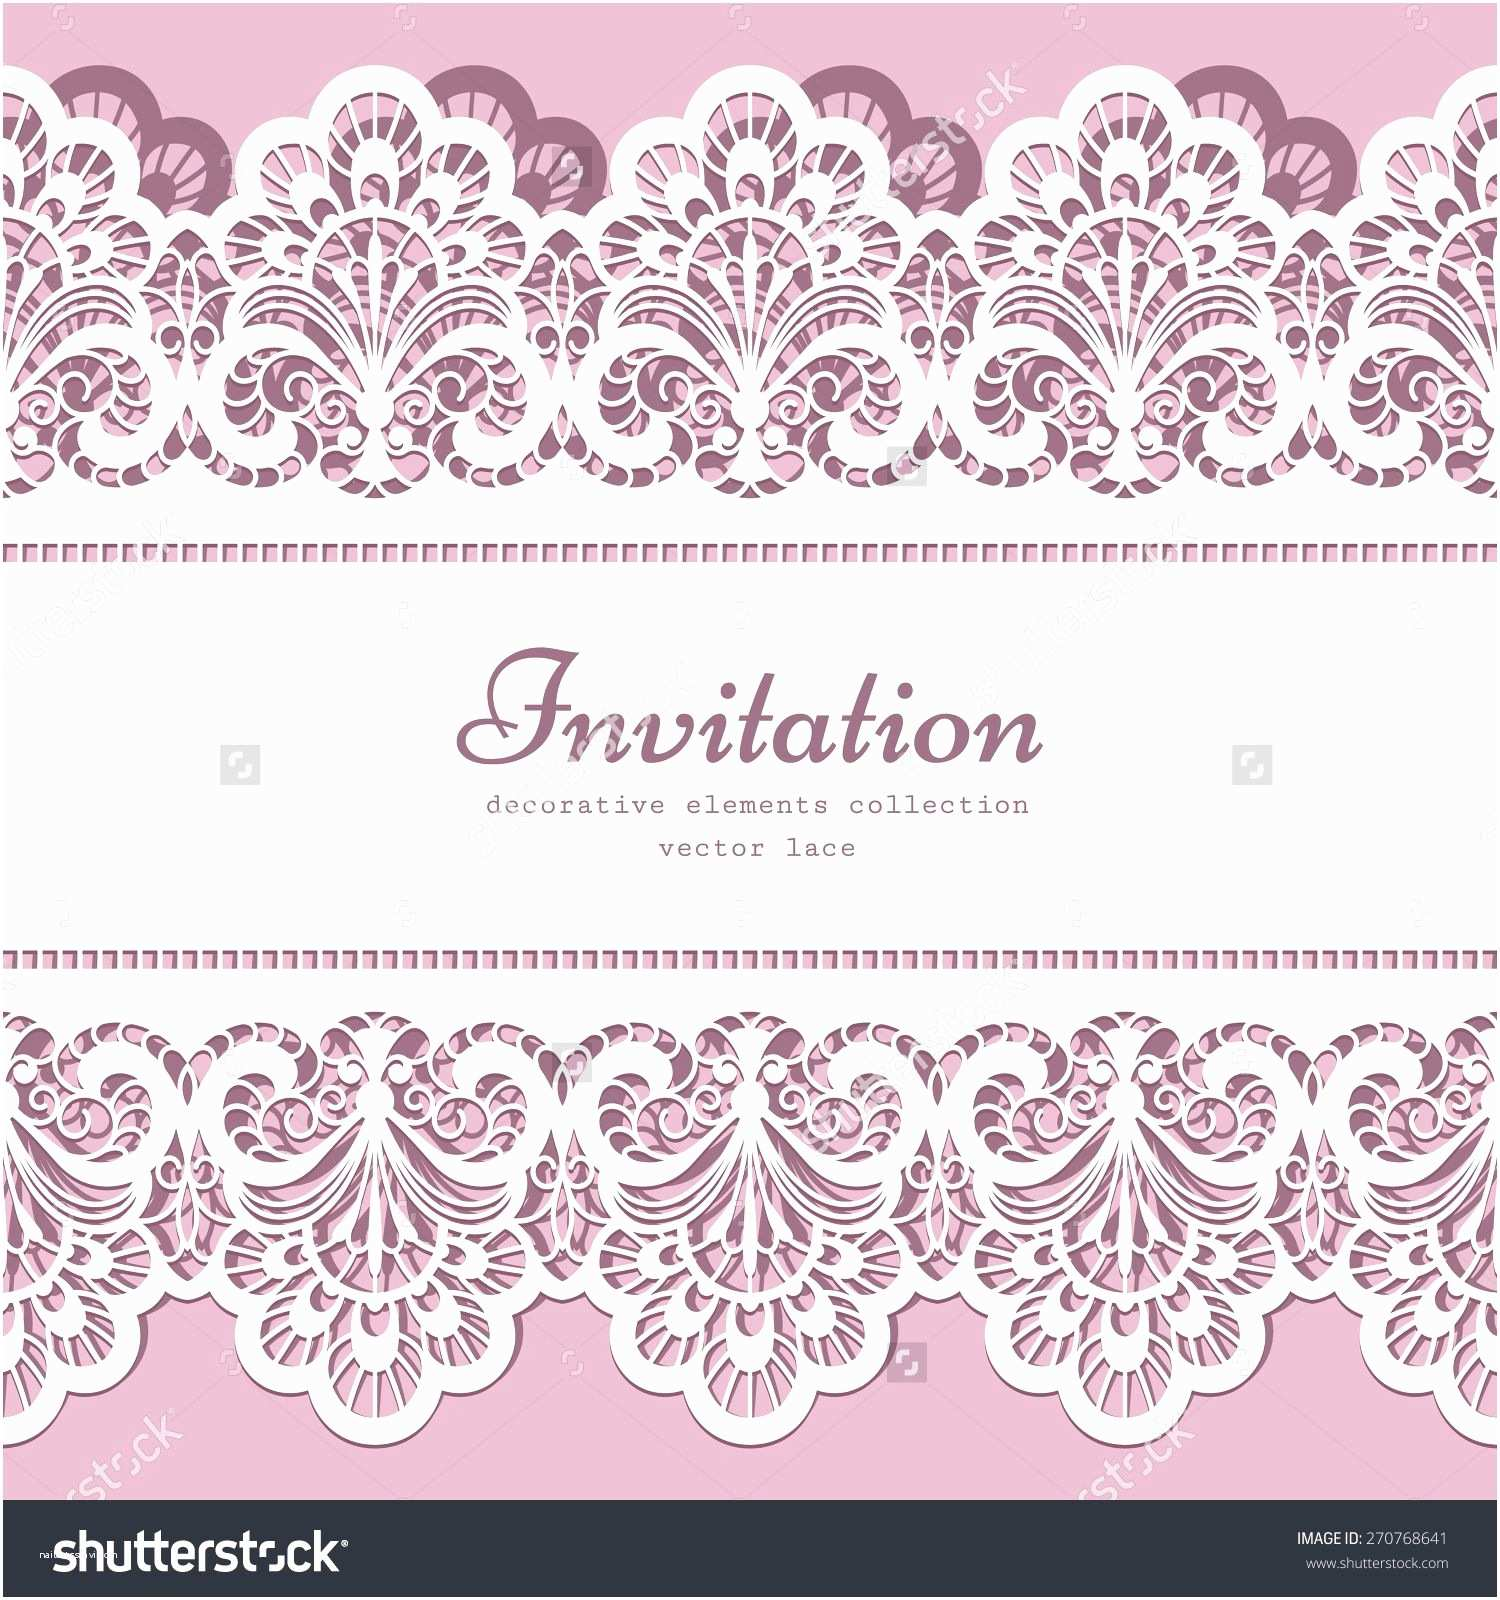 Lace Pattern Wedding Invitations Vector Lace Background with Cutout Lacy Border ornament